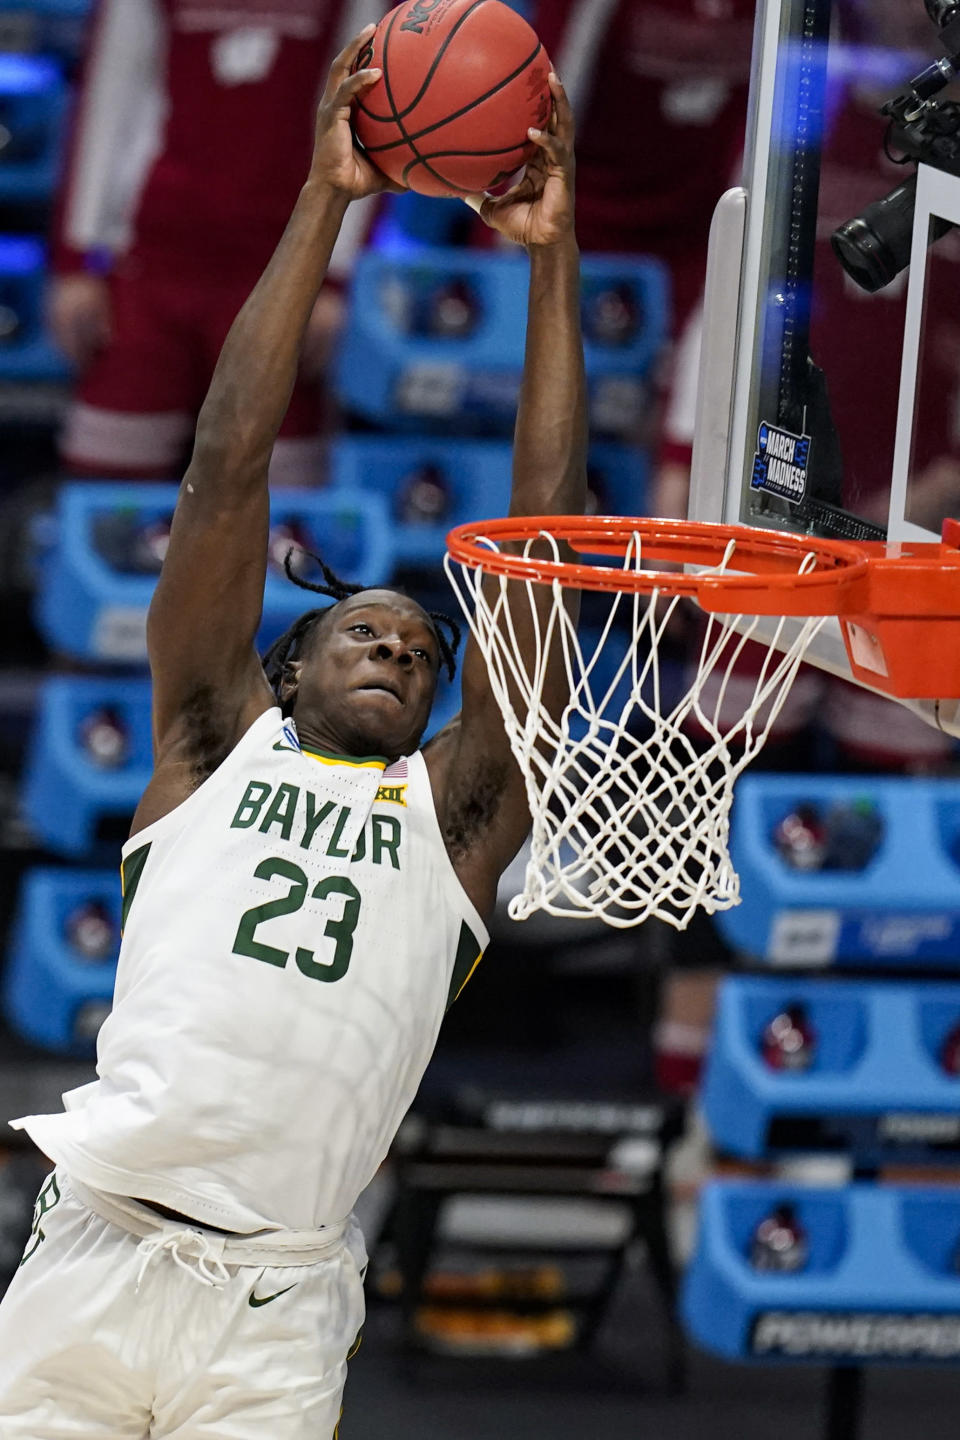 FILE - Baylor forward Jonathan Tchamwa Tchatchoua (23) goes up for a dunk against Wisconsin in the first half of a second-round game in the NCAA men's college basketball tournament at Hinkle Fieldhouse in Indianapolis, in this Sunday, March 21, 2021, file photo. All-American junior Jared Butler and his backcourt mates Davion Mitchell and MaCio Teague pretty much get all of the attention for the top-seeded Bears (26-2), who play a former Southwest Conference rival in the first national semifinal game Saturday. But those guards know they wouldn't be where they are now without the often interchangeable 245-pound post players _ the 6-foot-10 Thamba and and 6-8 Tchamwa Tchatchoua. (AP Photo/Michael Conroy, File)